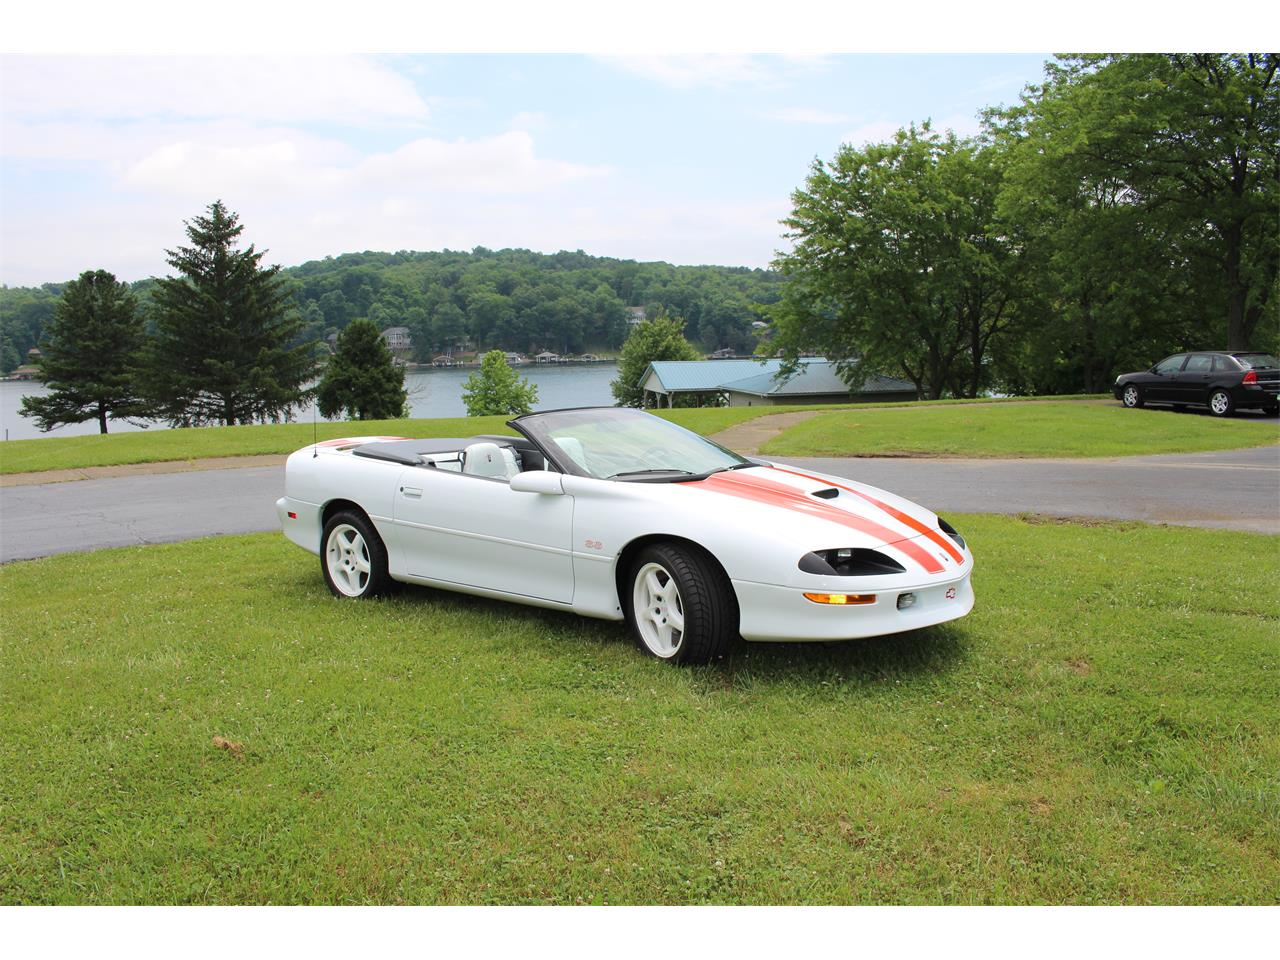 Large Picture of '97 Chevrolet Camaro RS/SS - $21,900.00 Offered by a Private Seller - MZ9G